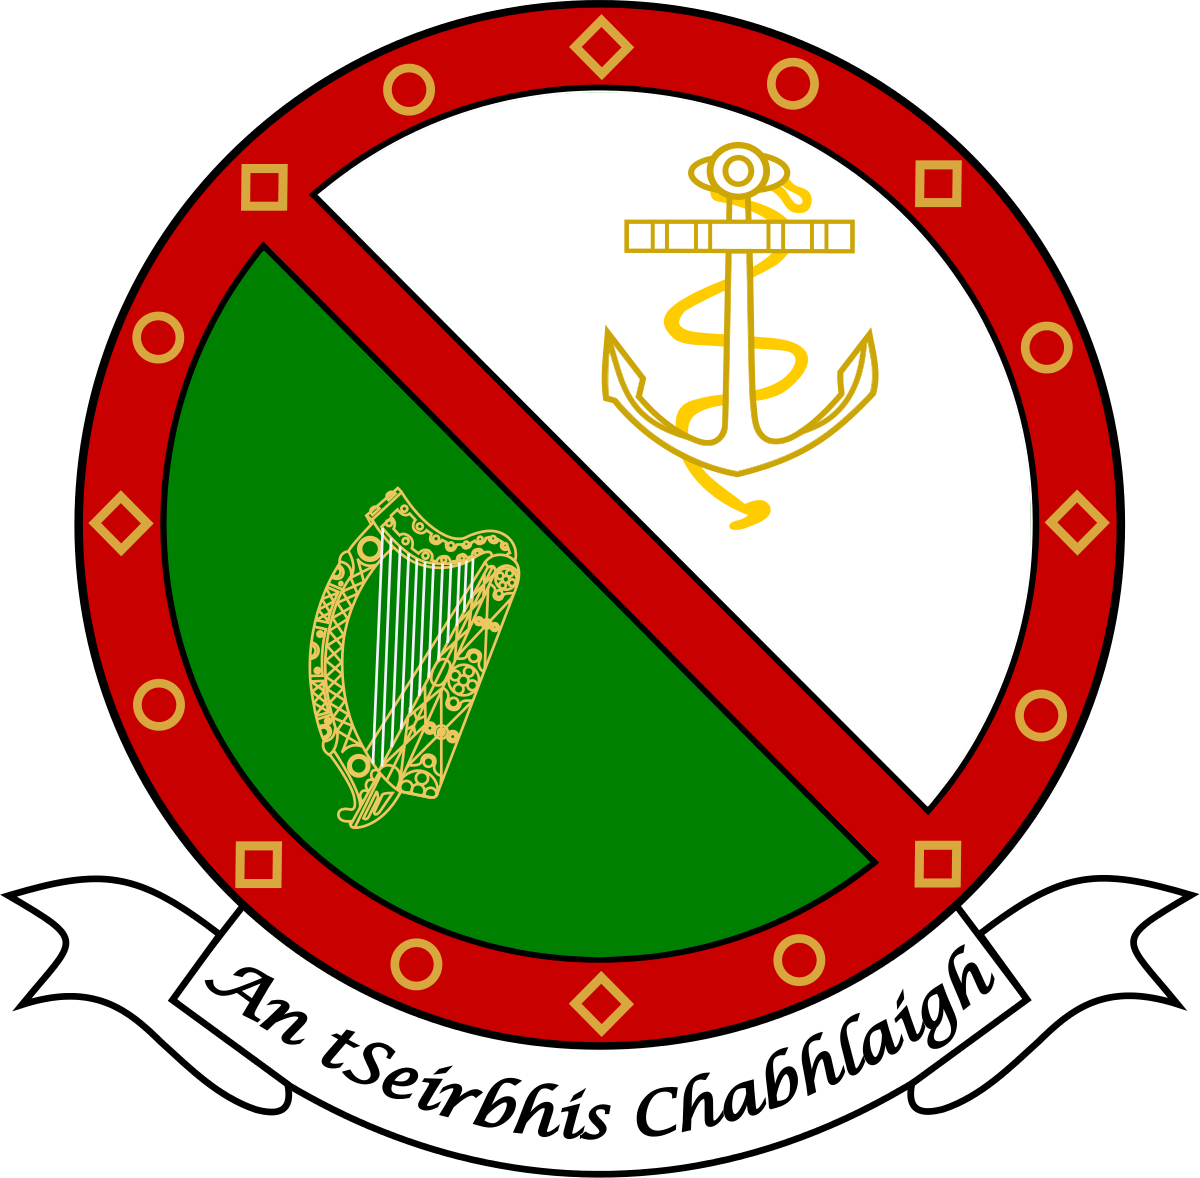 irish-naval-service